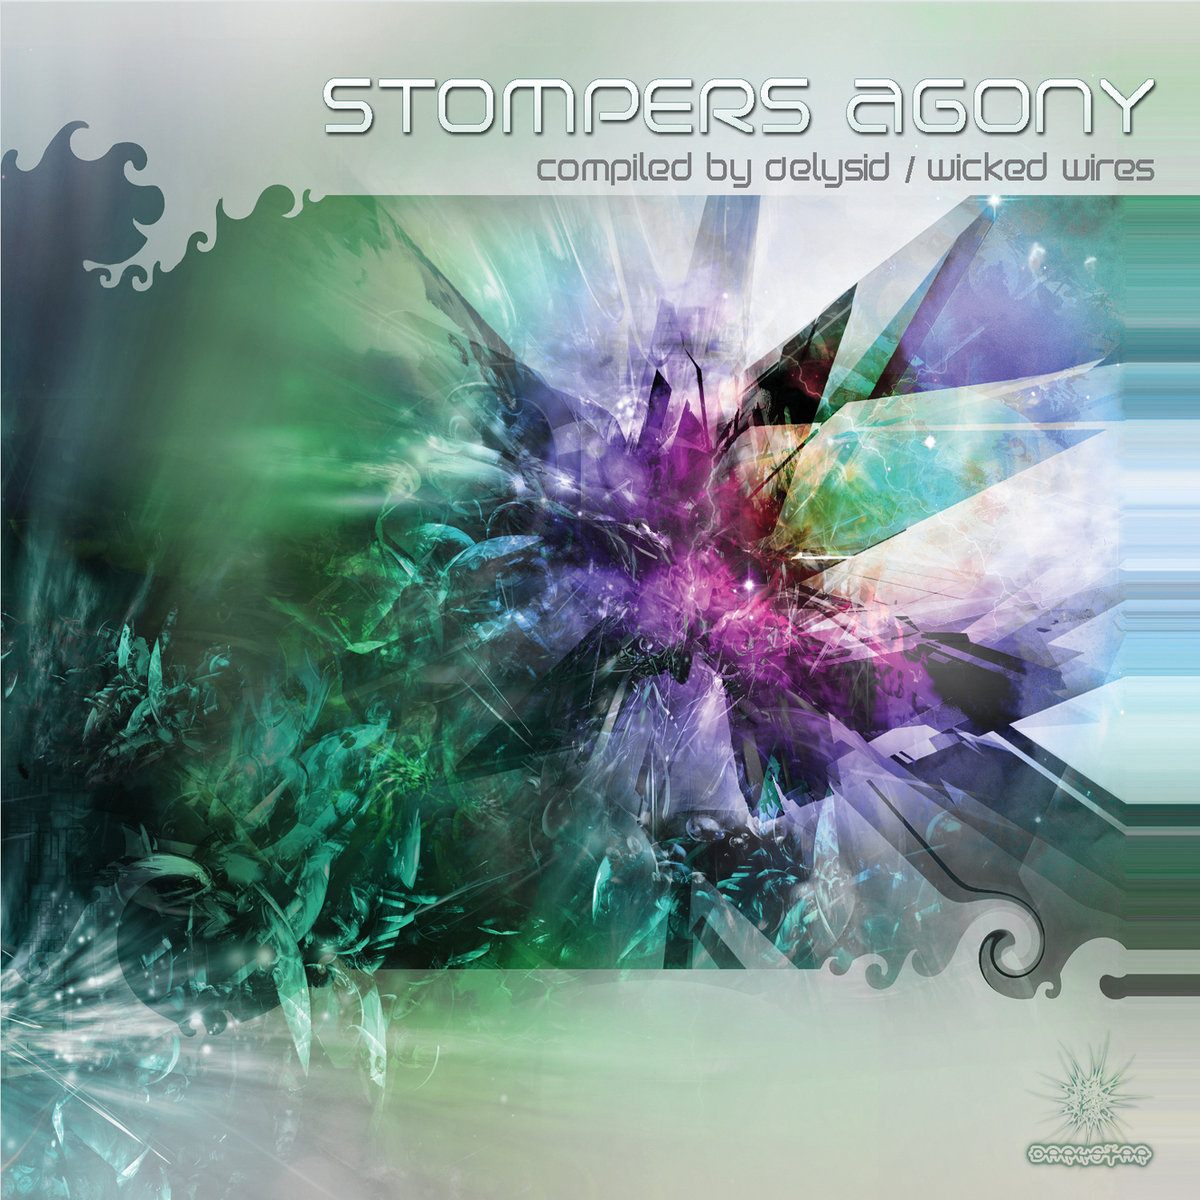 Delysid - Stompers Agony @ 'Various Artists - Stompers Agony (Compiled by Delysid / Wicked Wires)' album (electronic, goa)